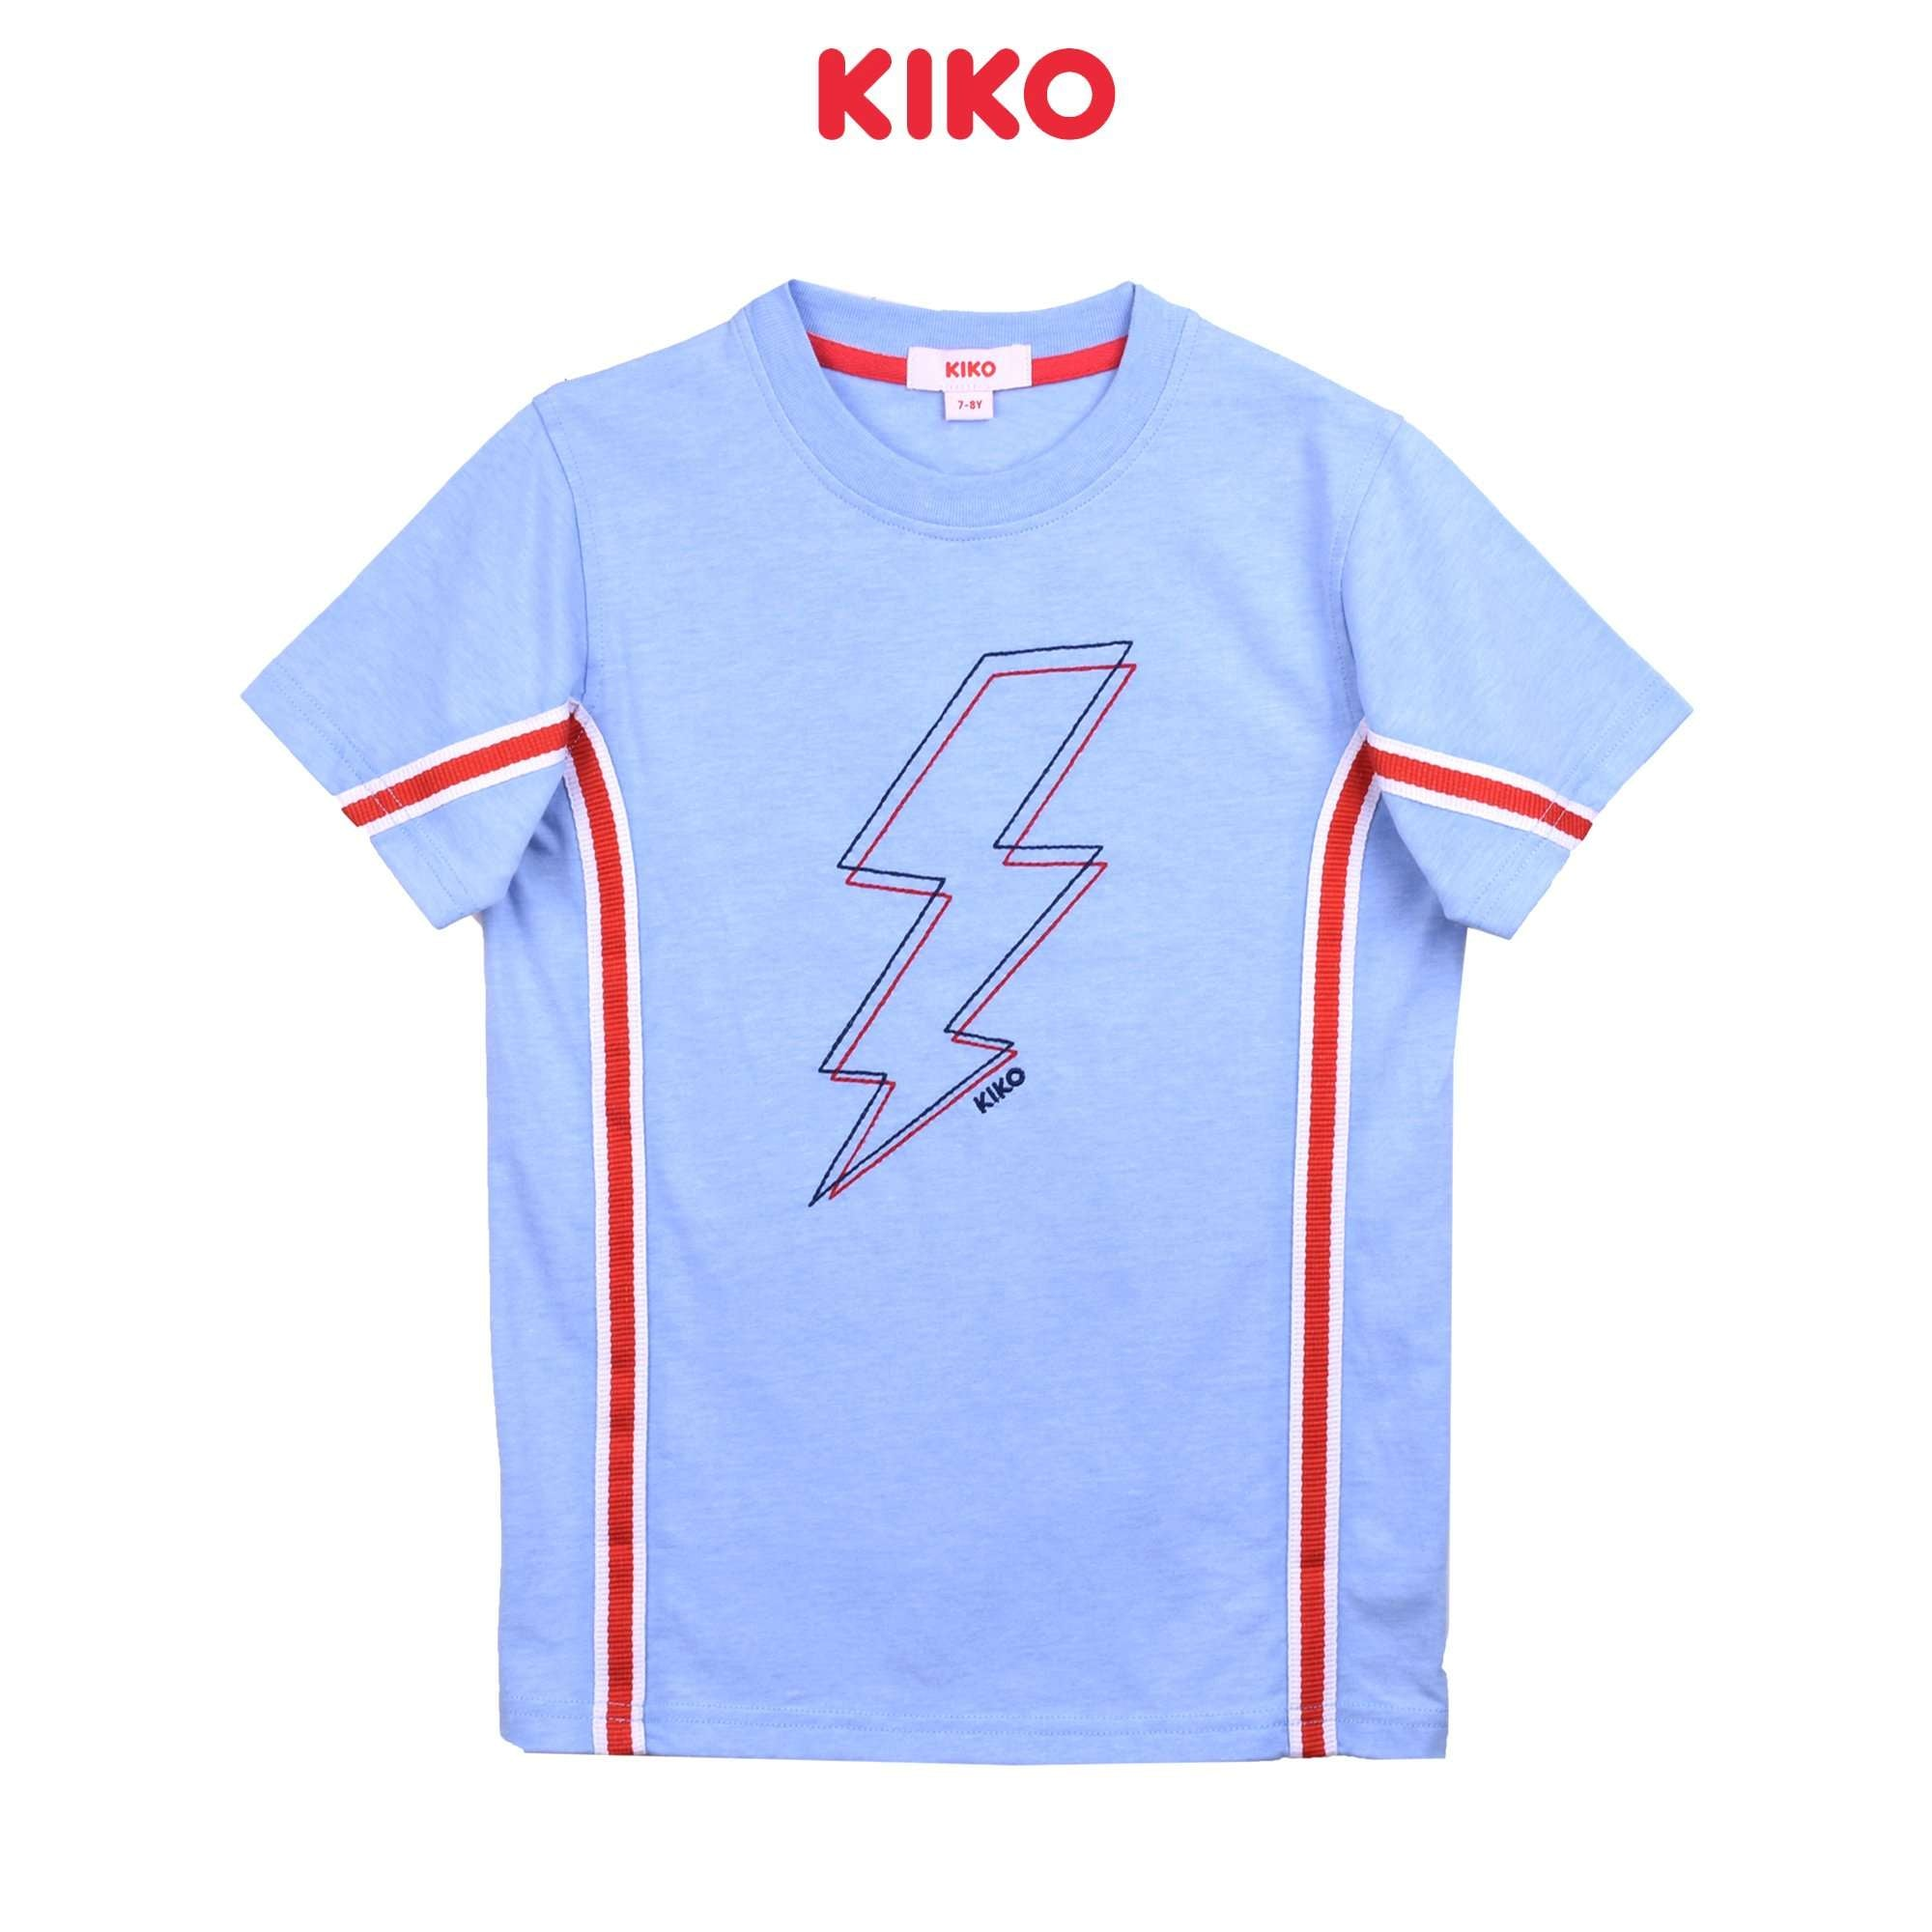 KIKO Boy Short Sleeve Tee K922001-1108-L5 : Buy KIKO online at CMG.MY